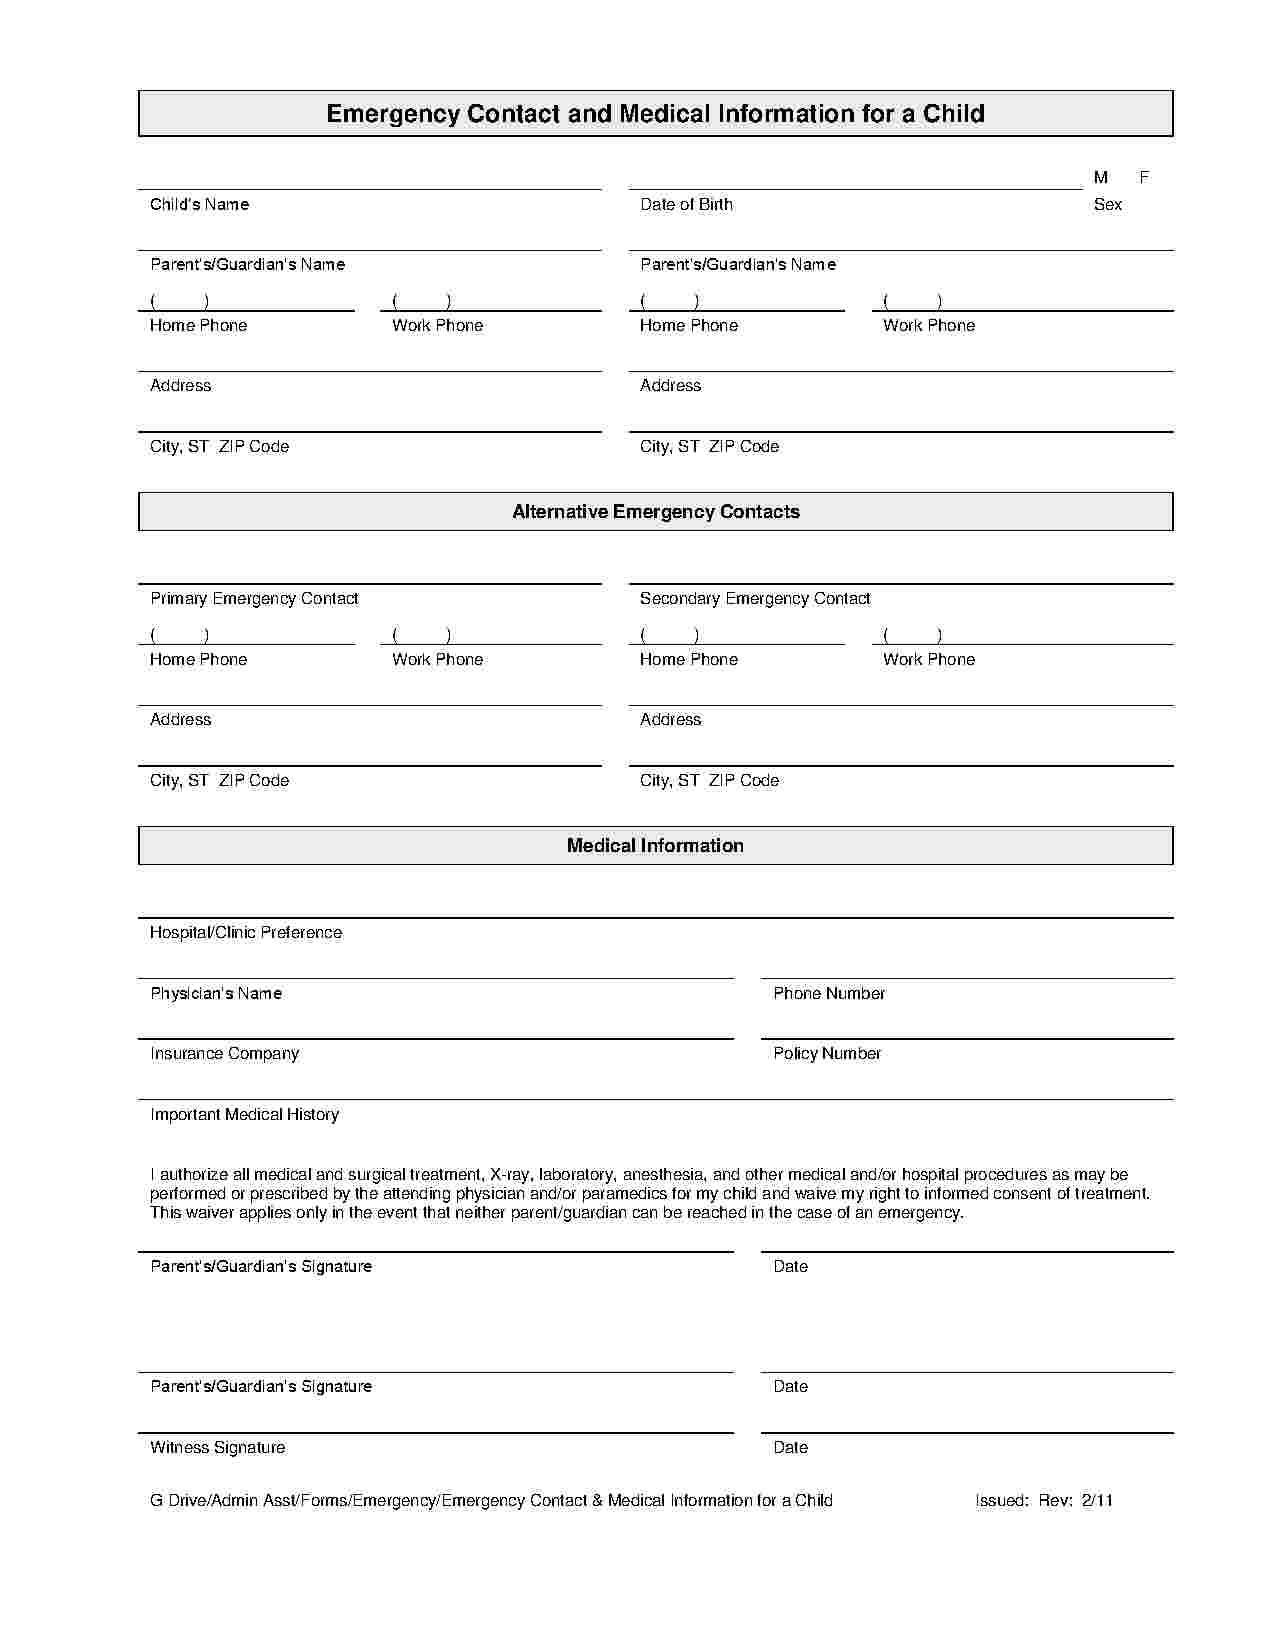 Child Medical Consent Emergency Contact Form Student